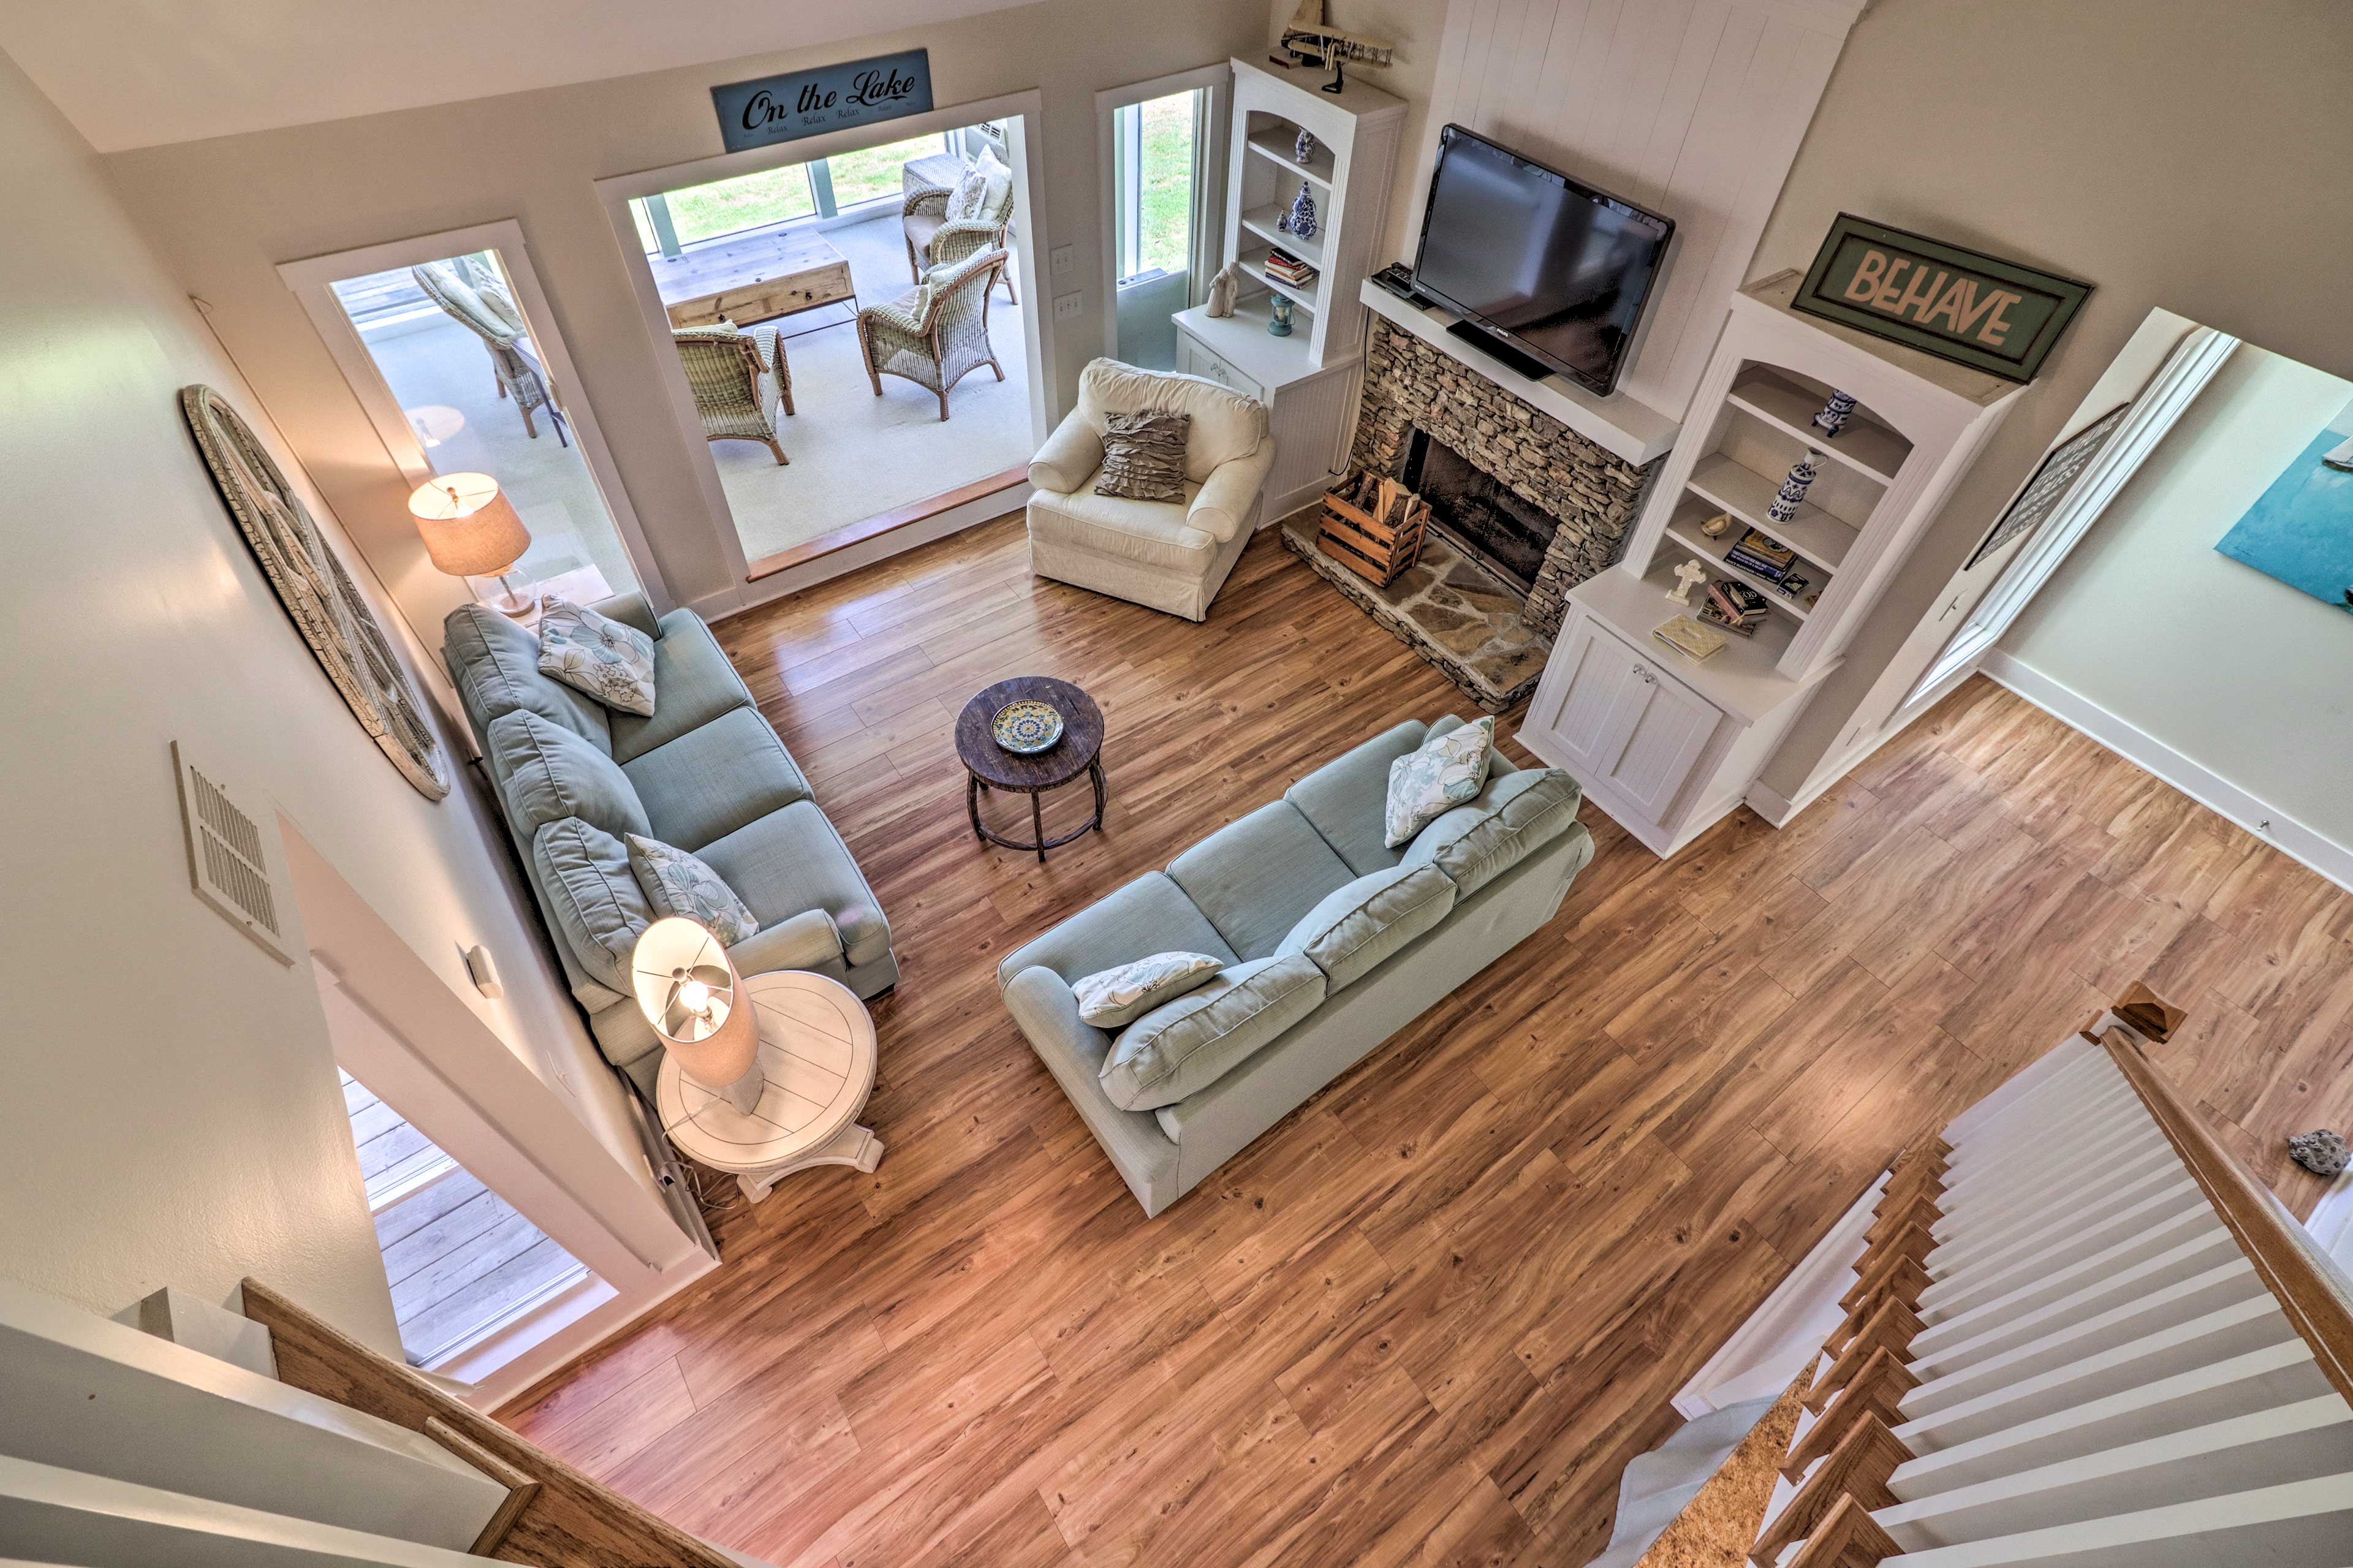 The home's interior is just as wonderful as the exterior!